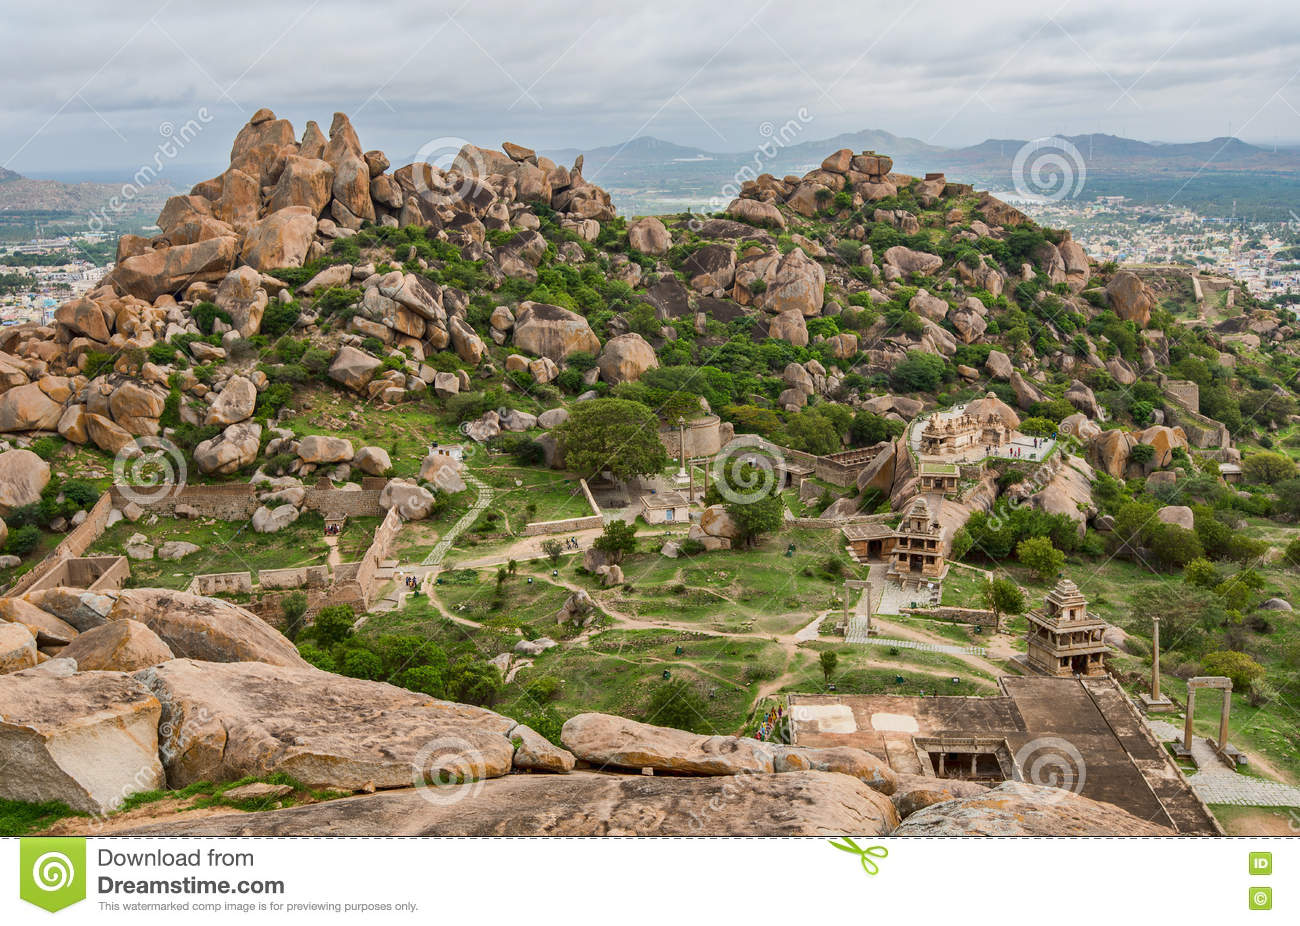 View From Atop Thuppada Kola Betta Inside Chitradurga Fort.